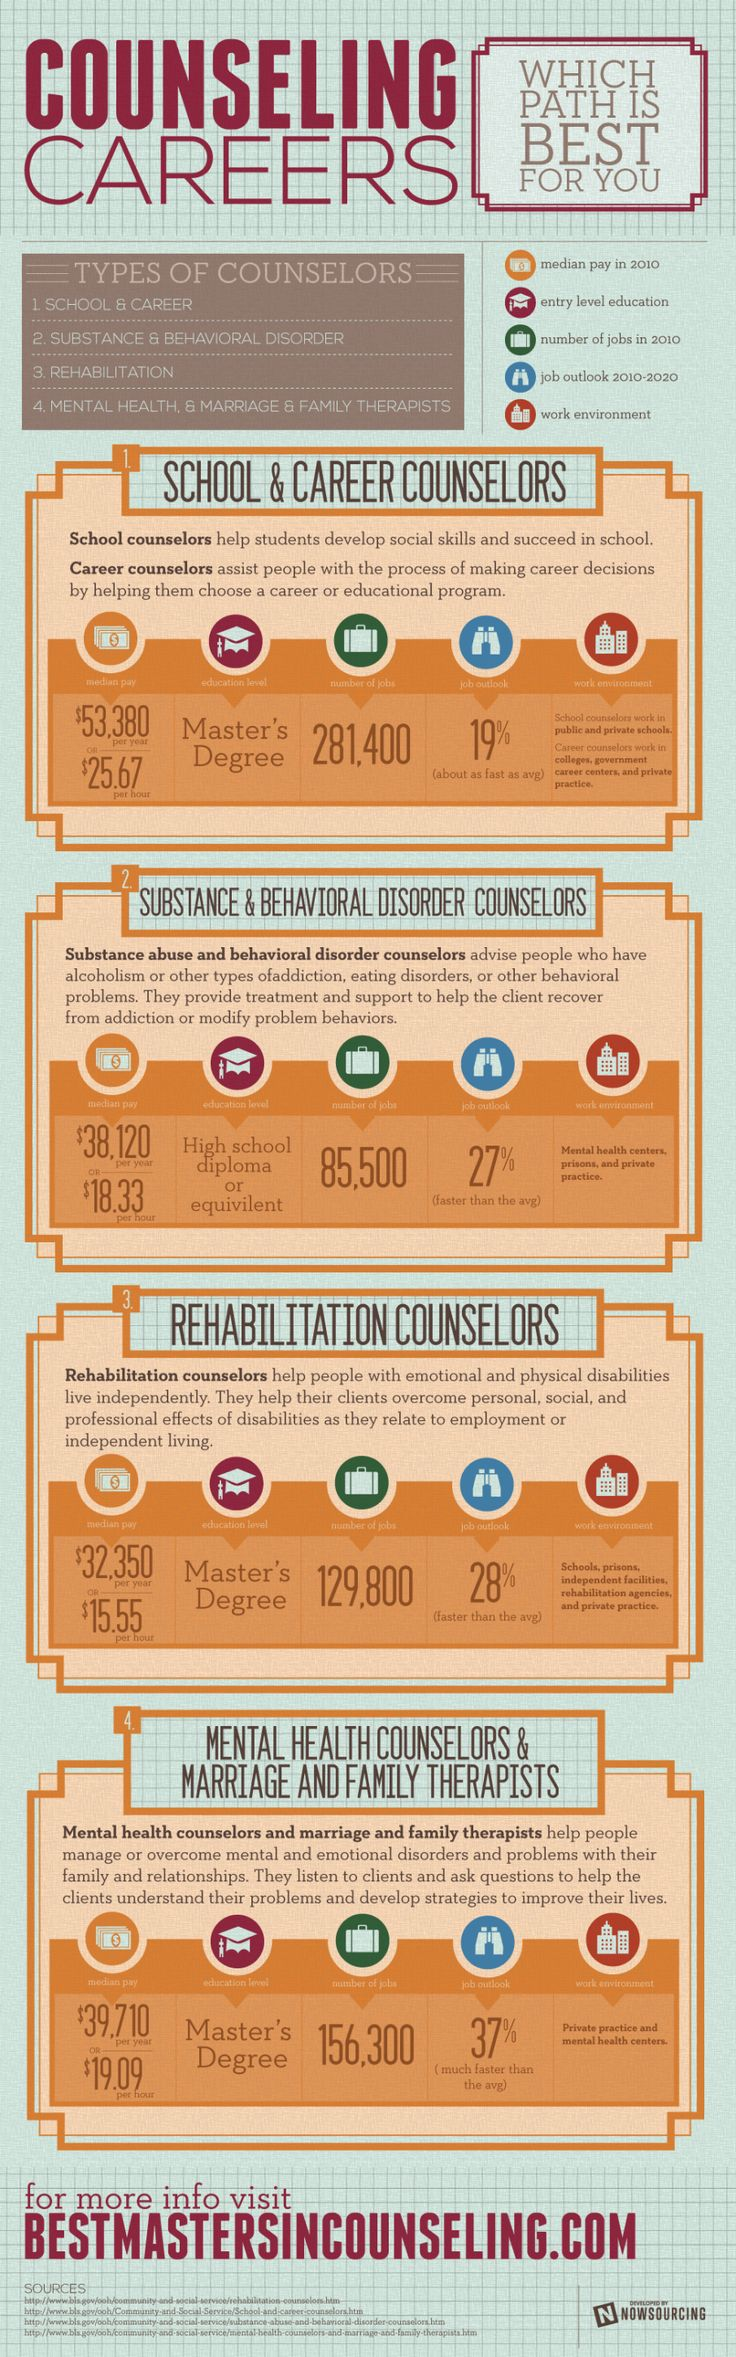 Counseling Careers: Which Path Is Best For You #INFOGRAPHIC